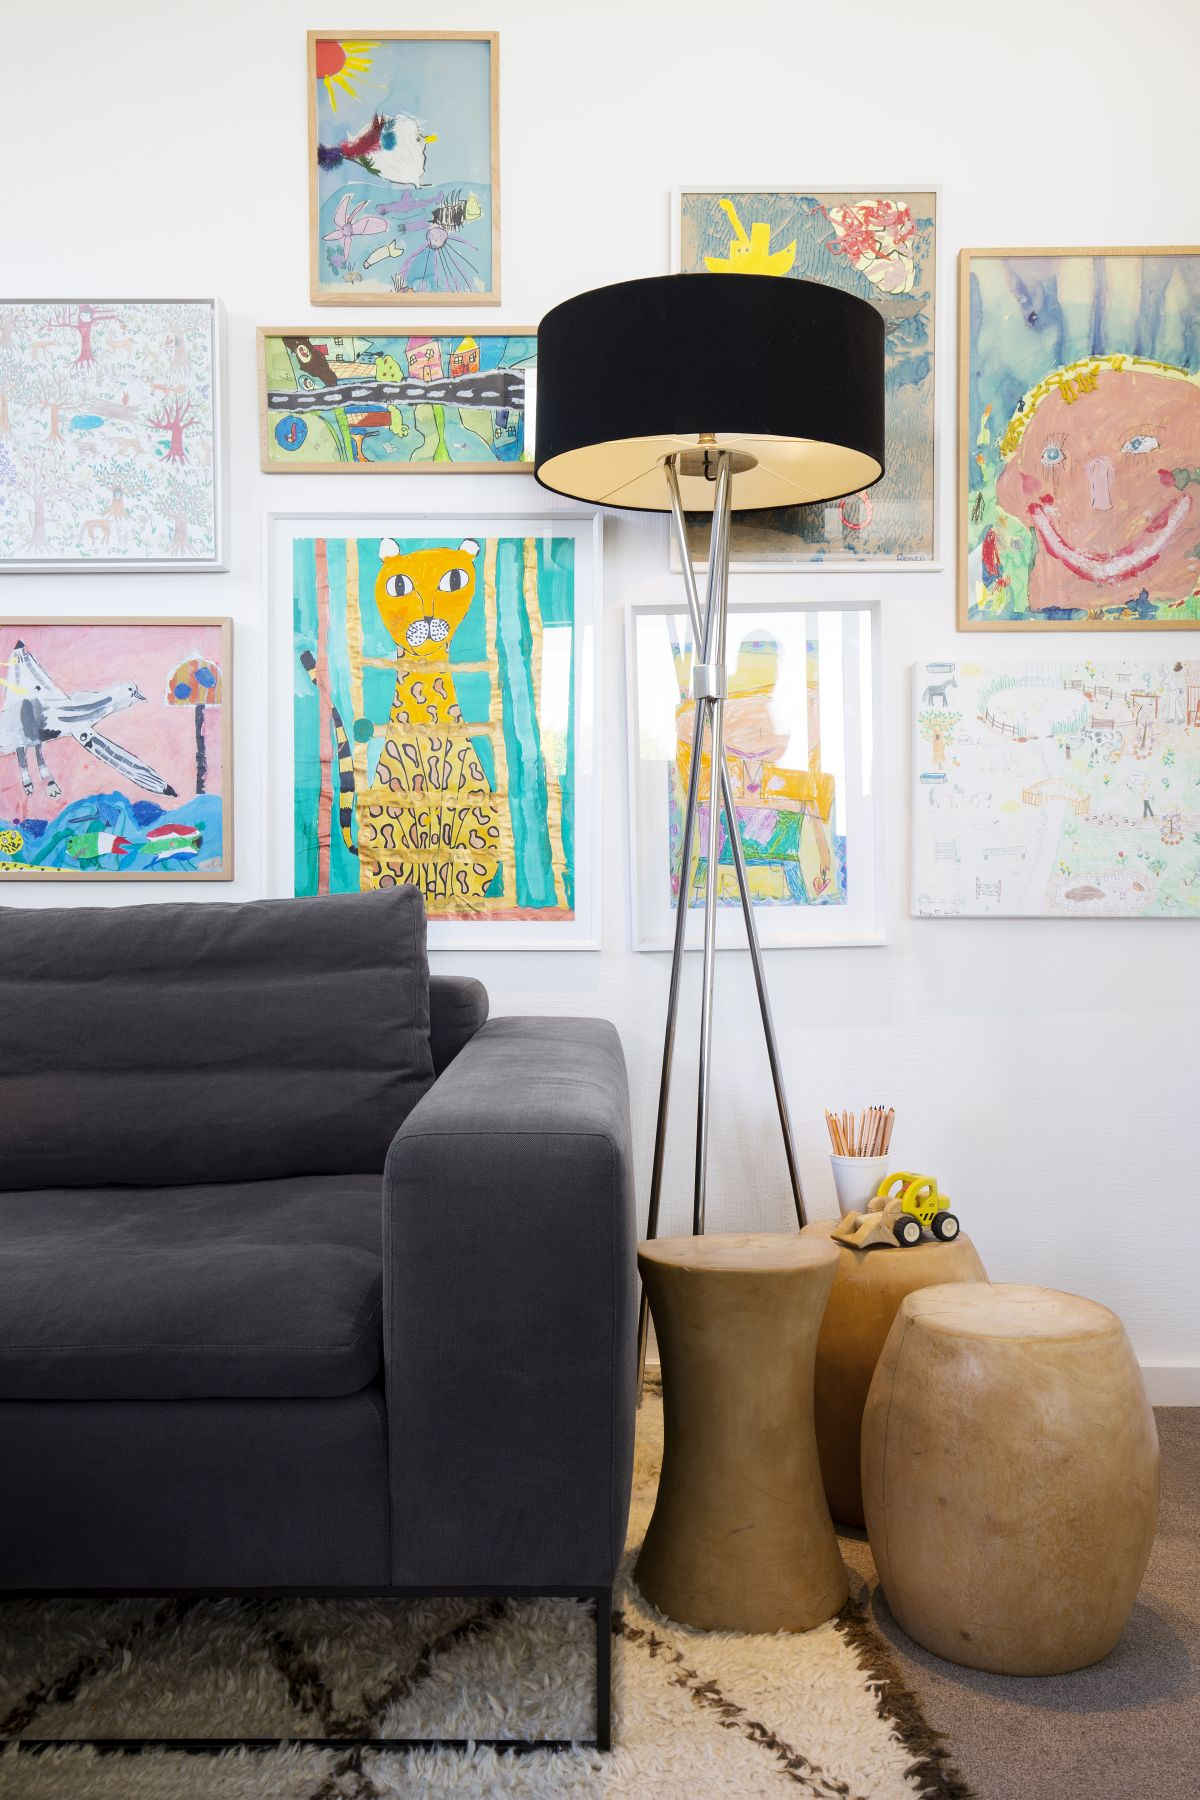 Colorful and cheerful artwork done by the kids covers this wall, giving it a personalized and unique look